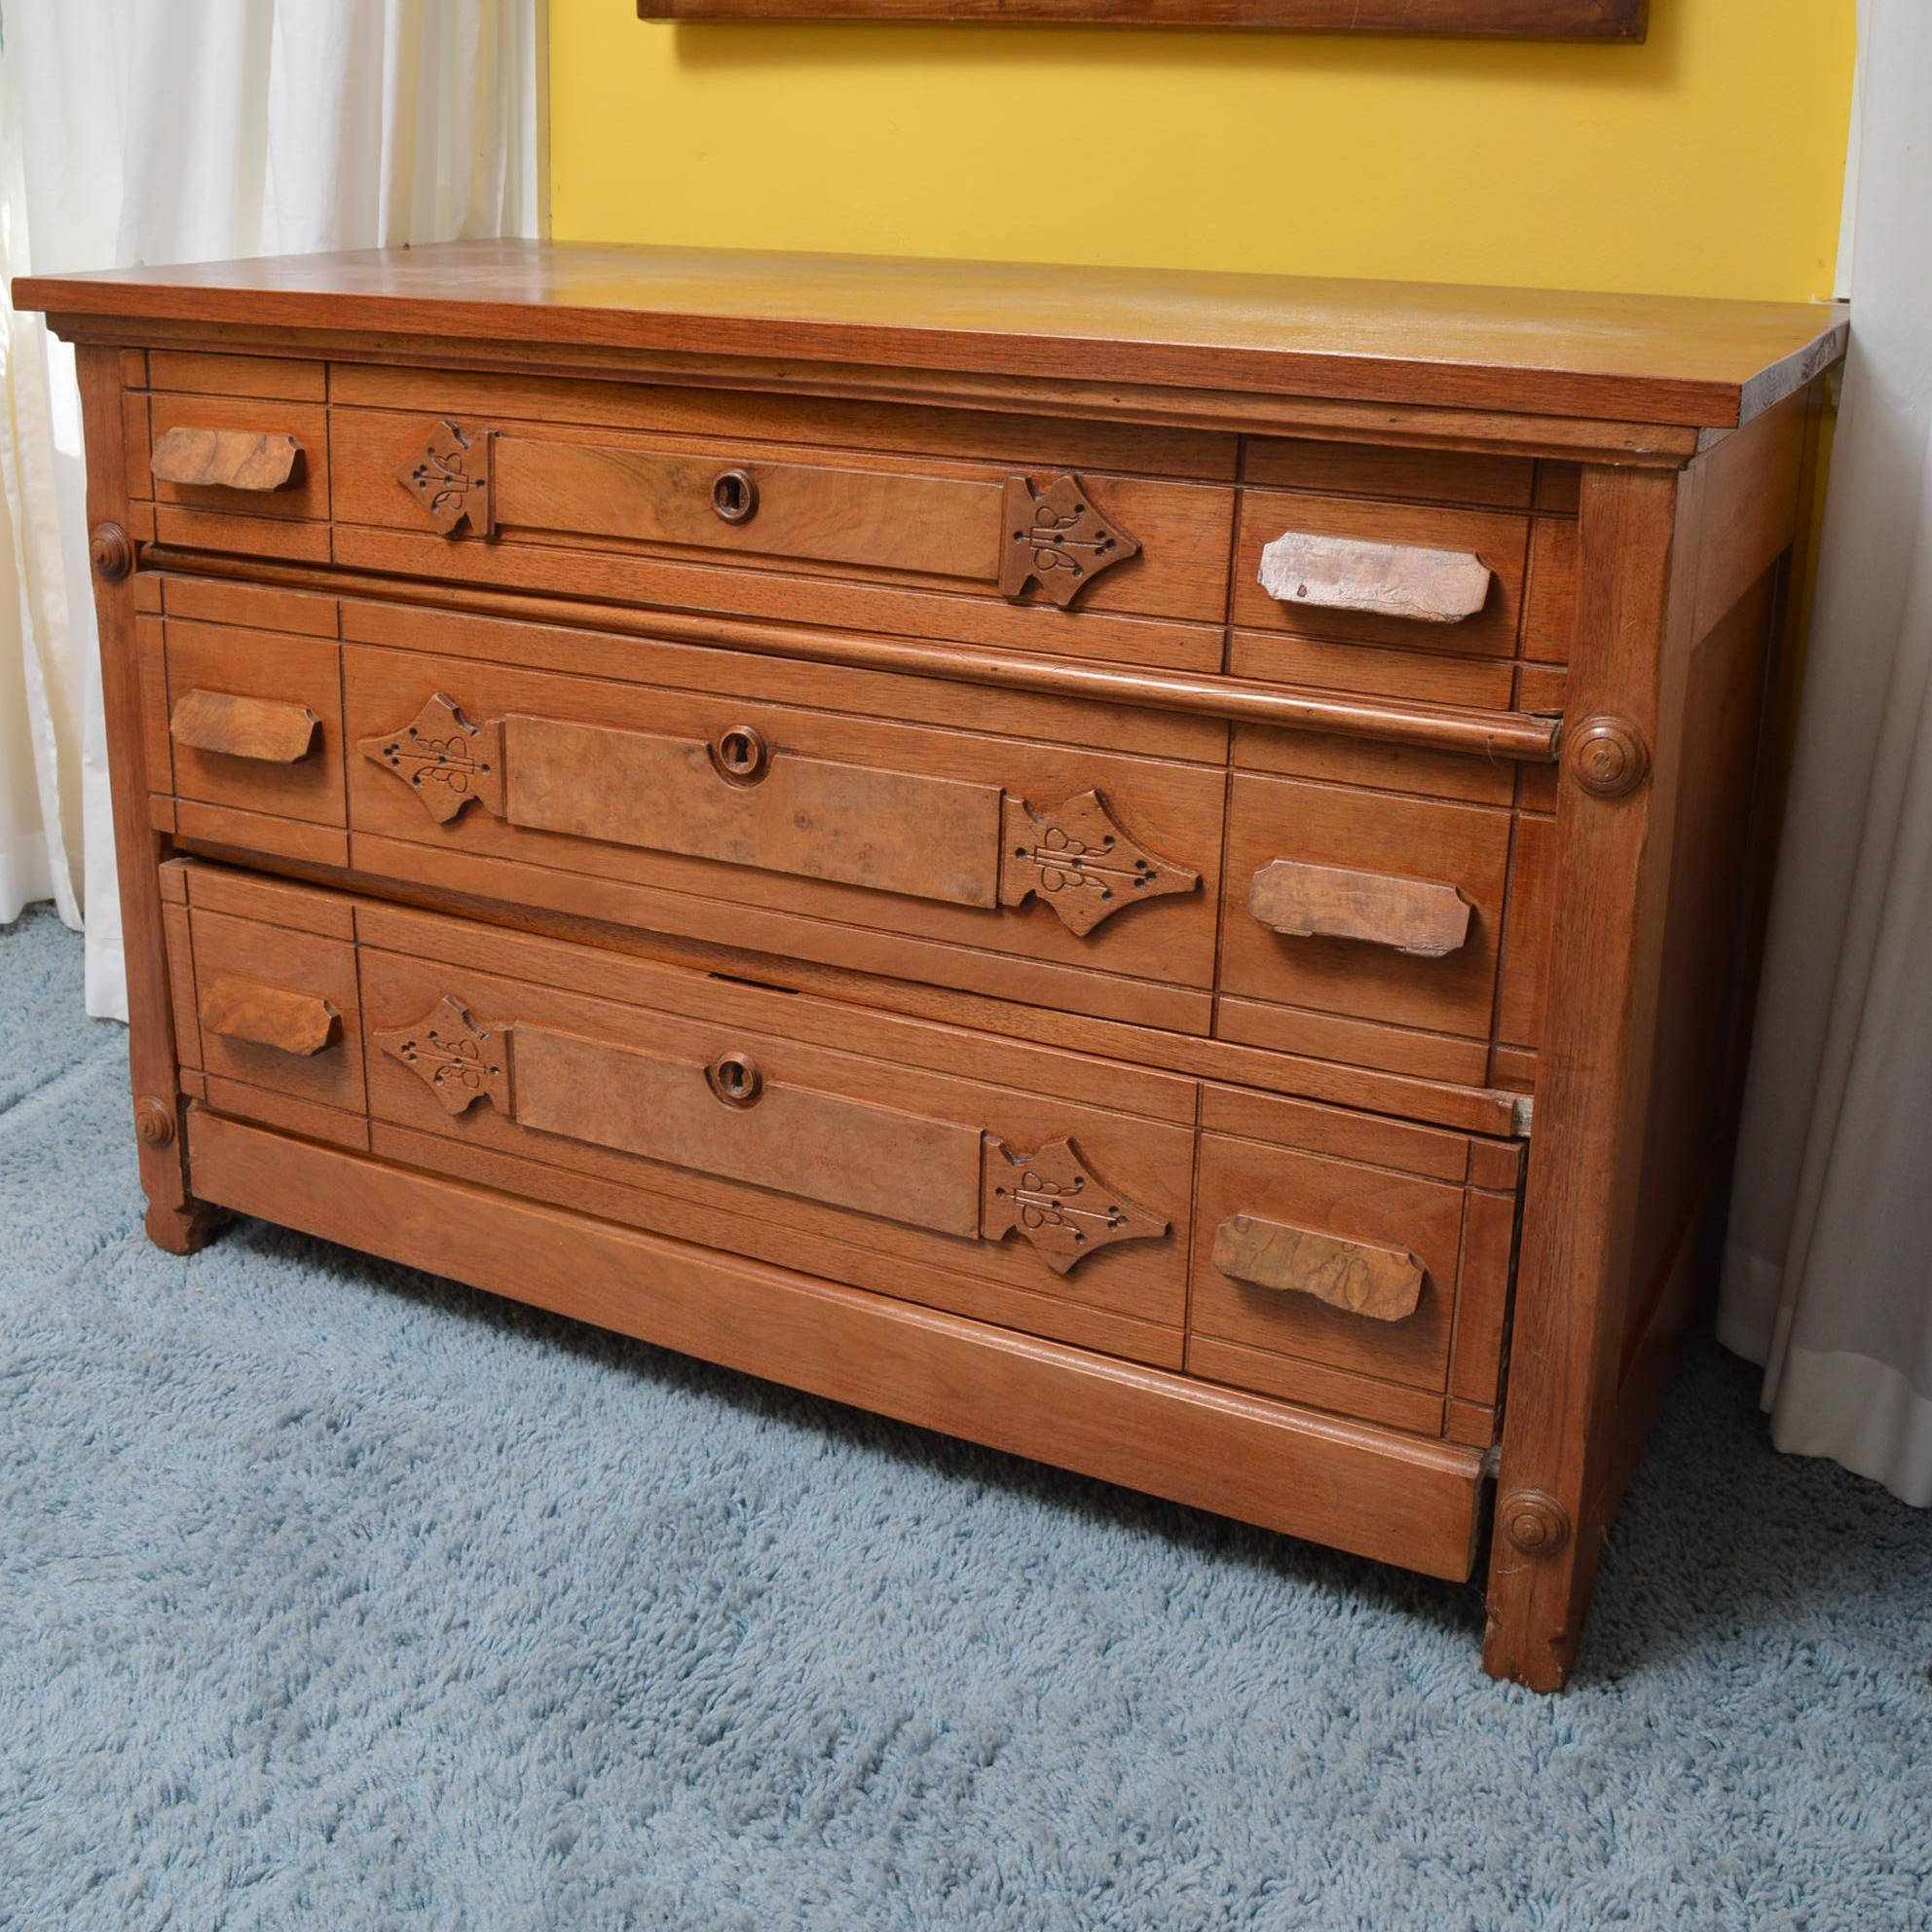 East Lake Style Wooden Chest of Drawers